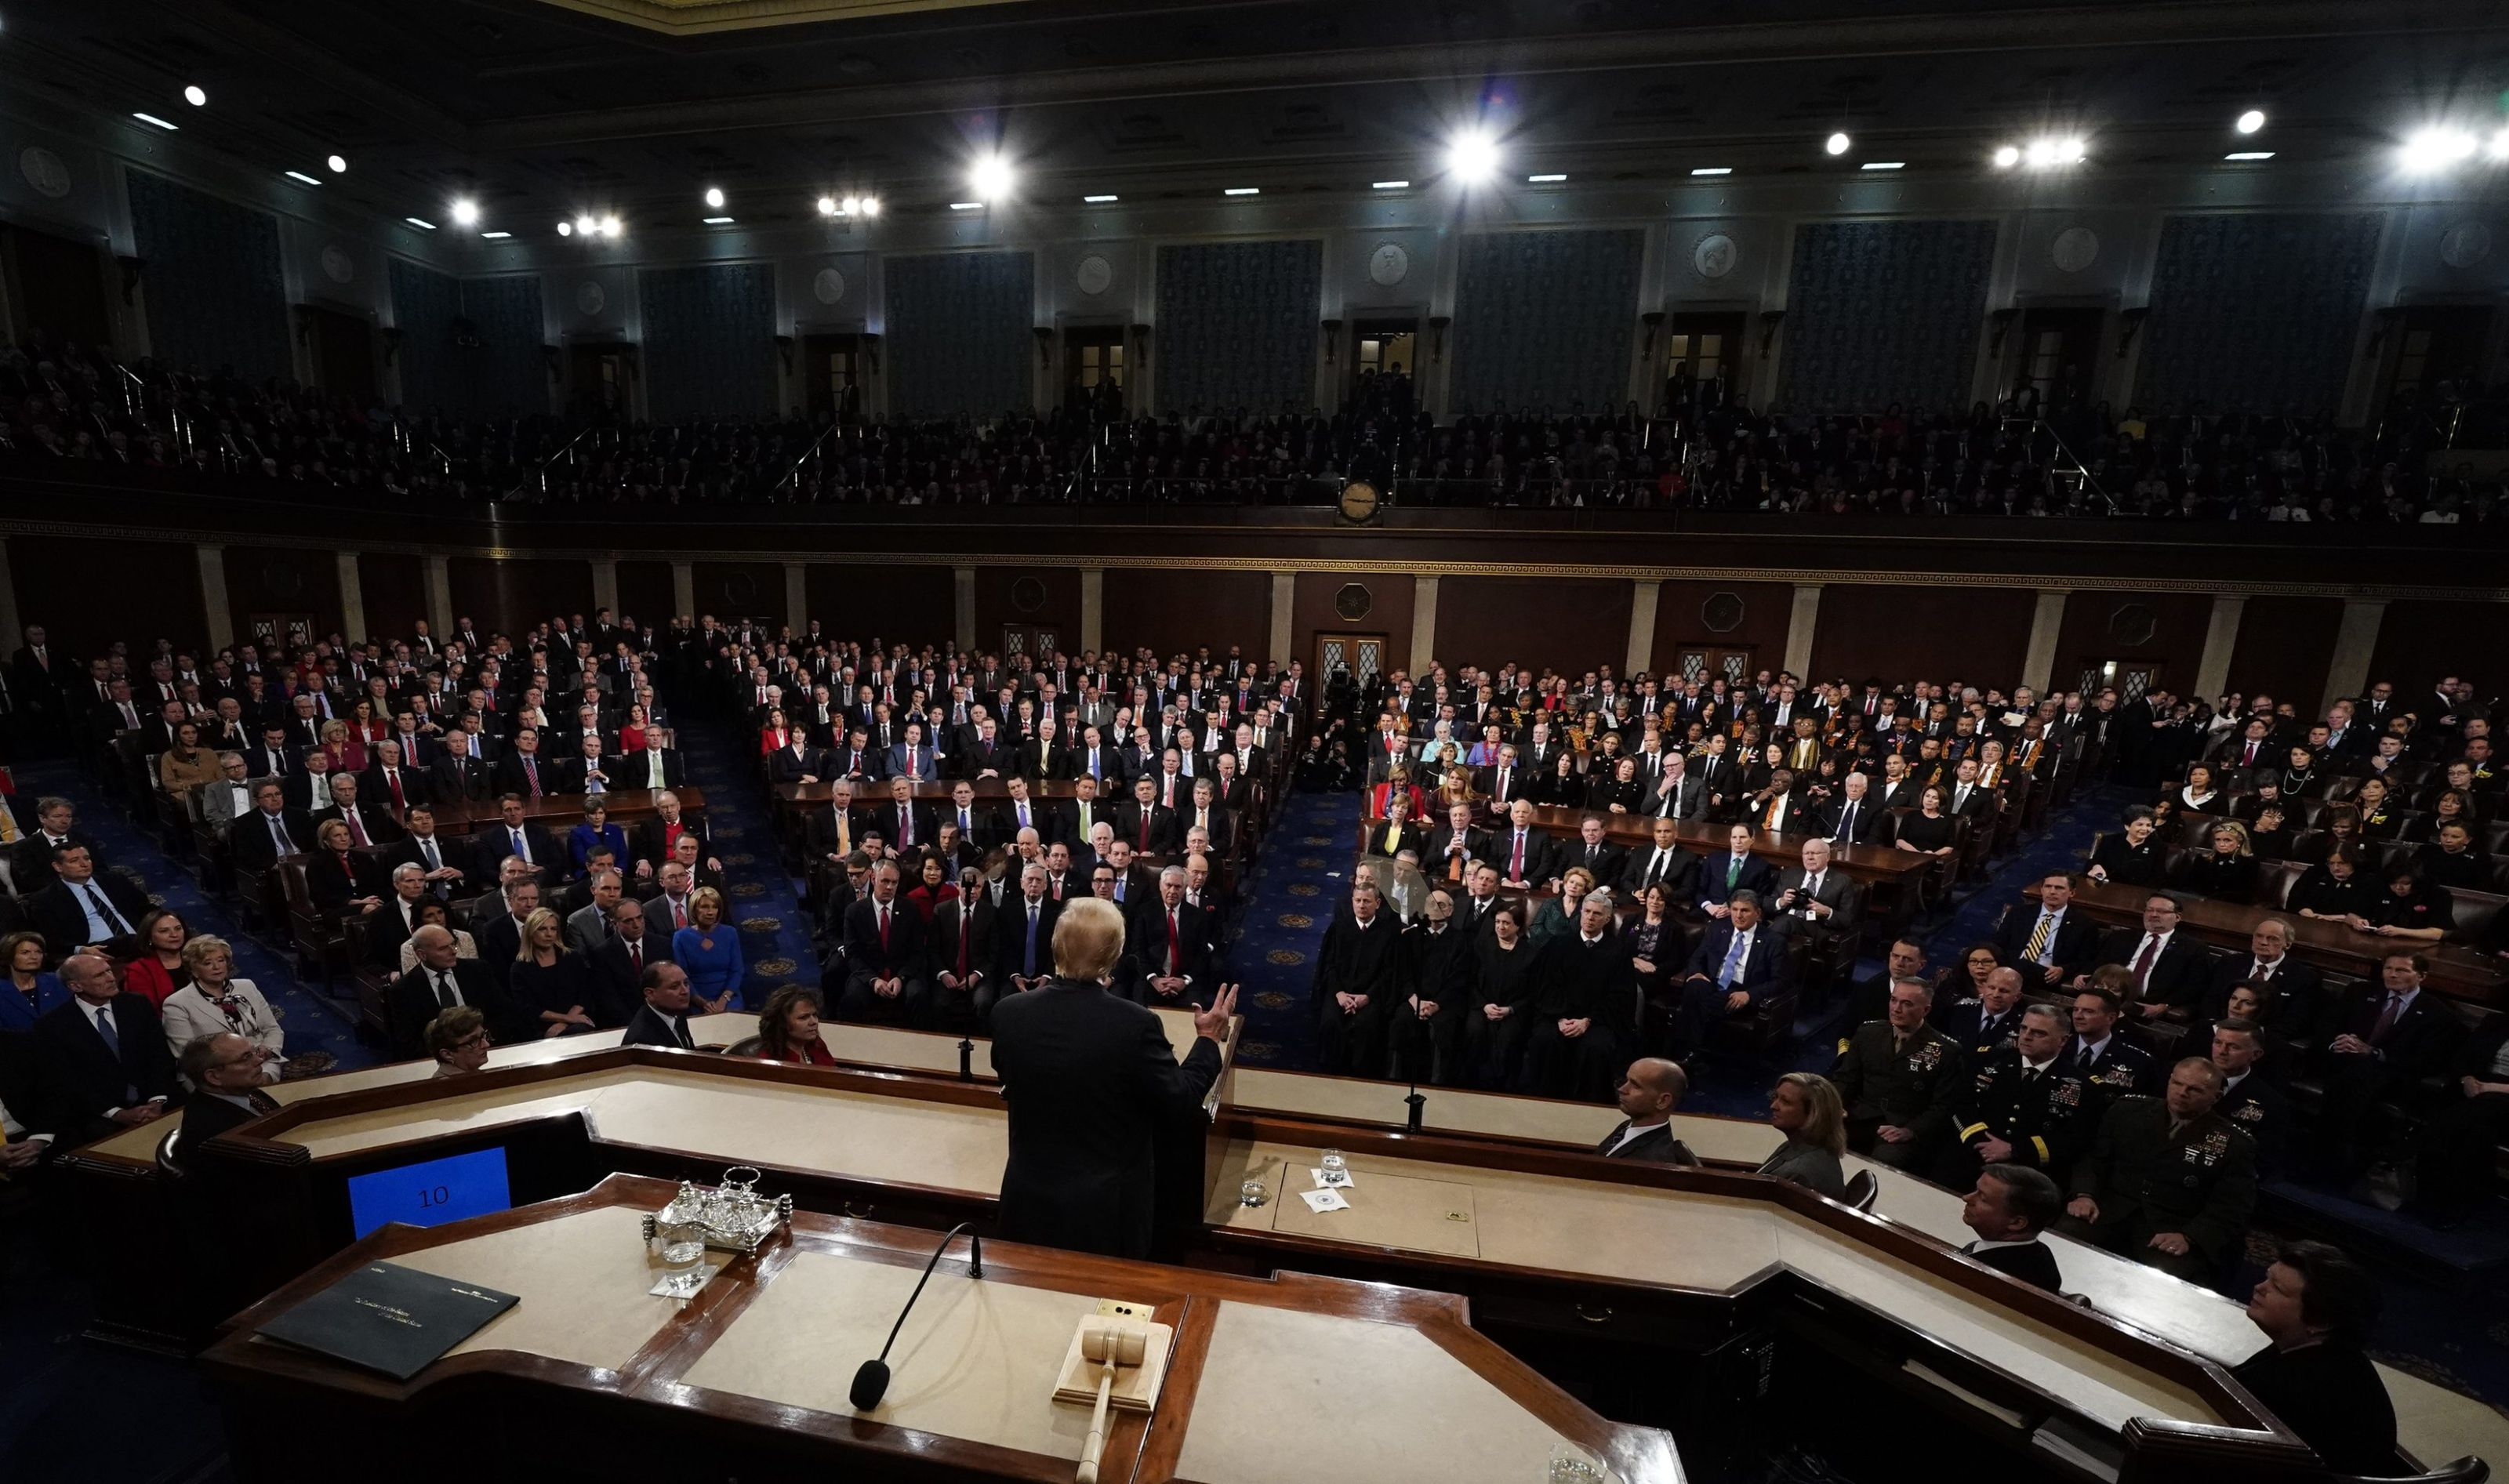 US Congress grapples with immigration, averting funding fight